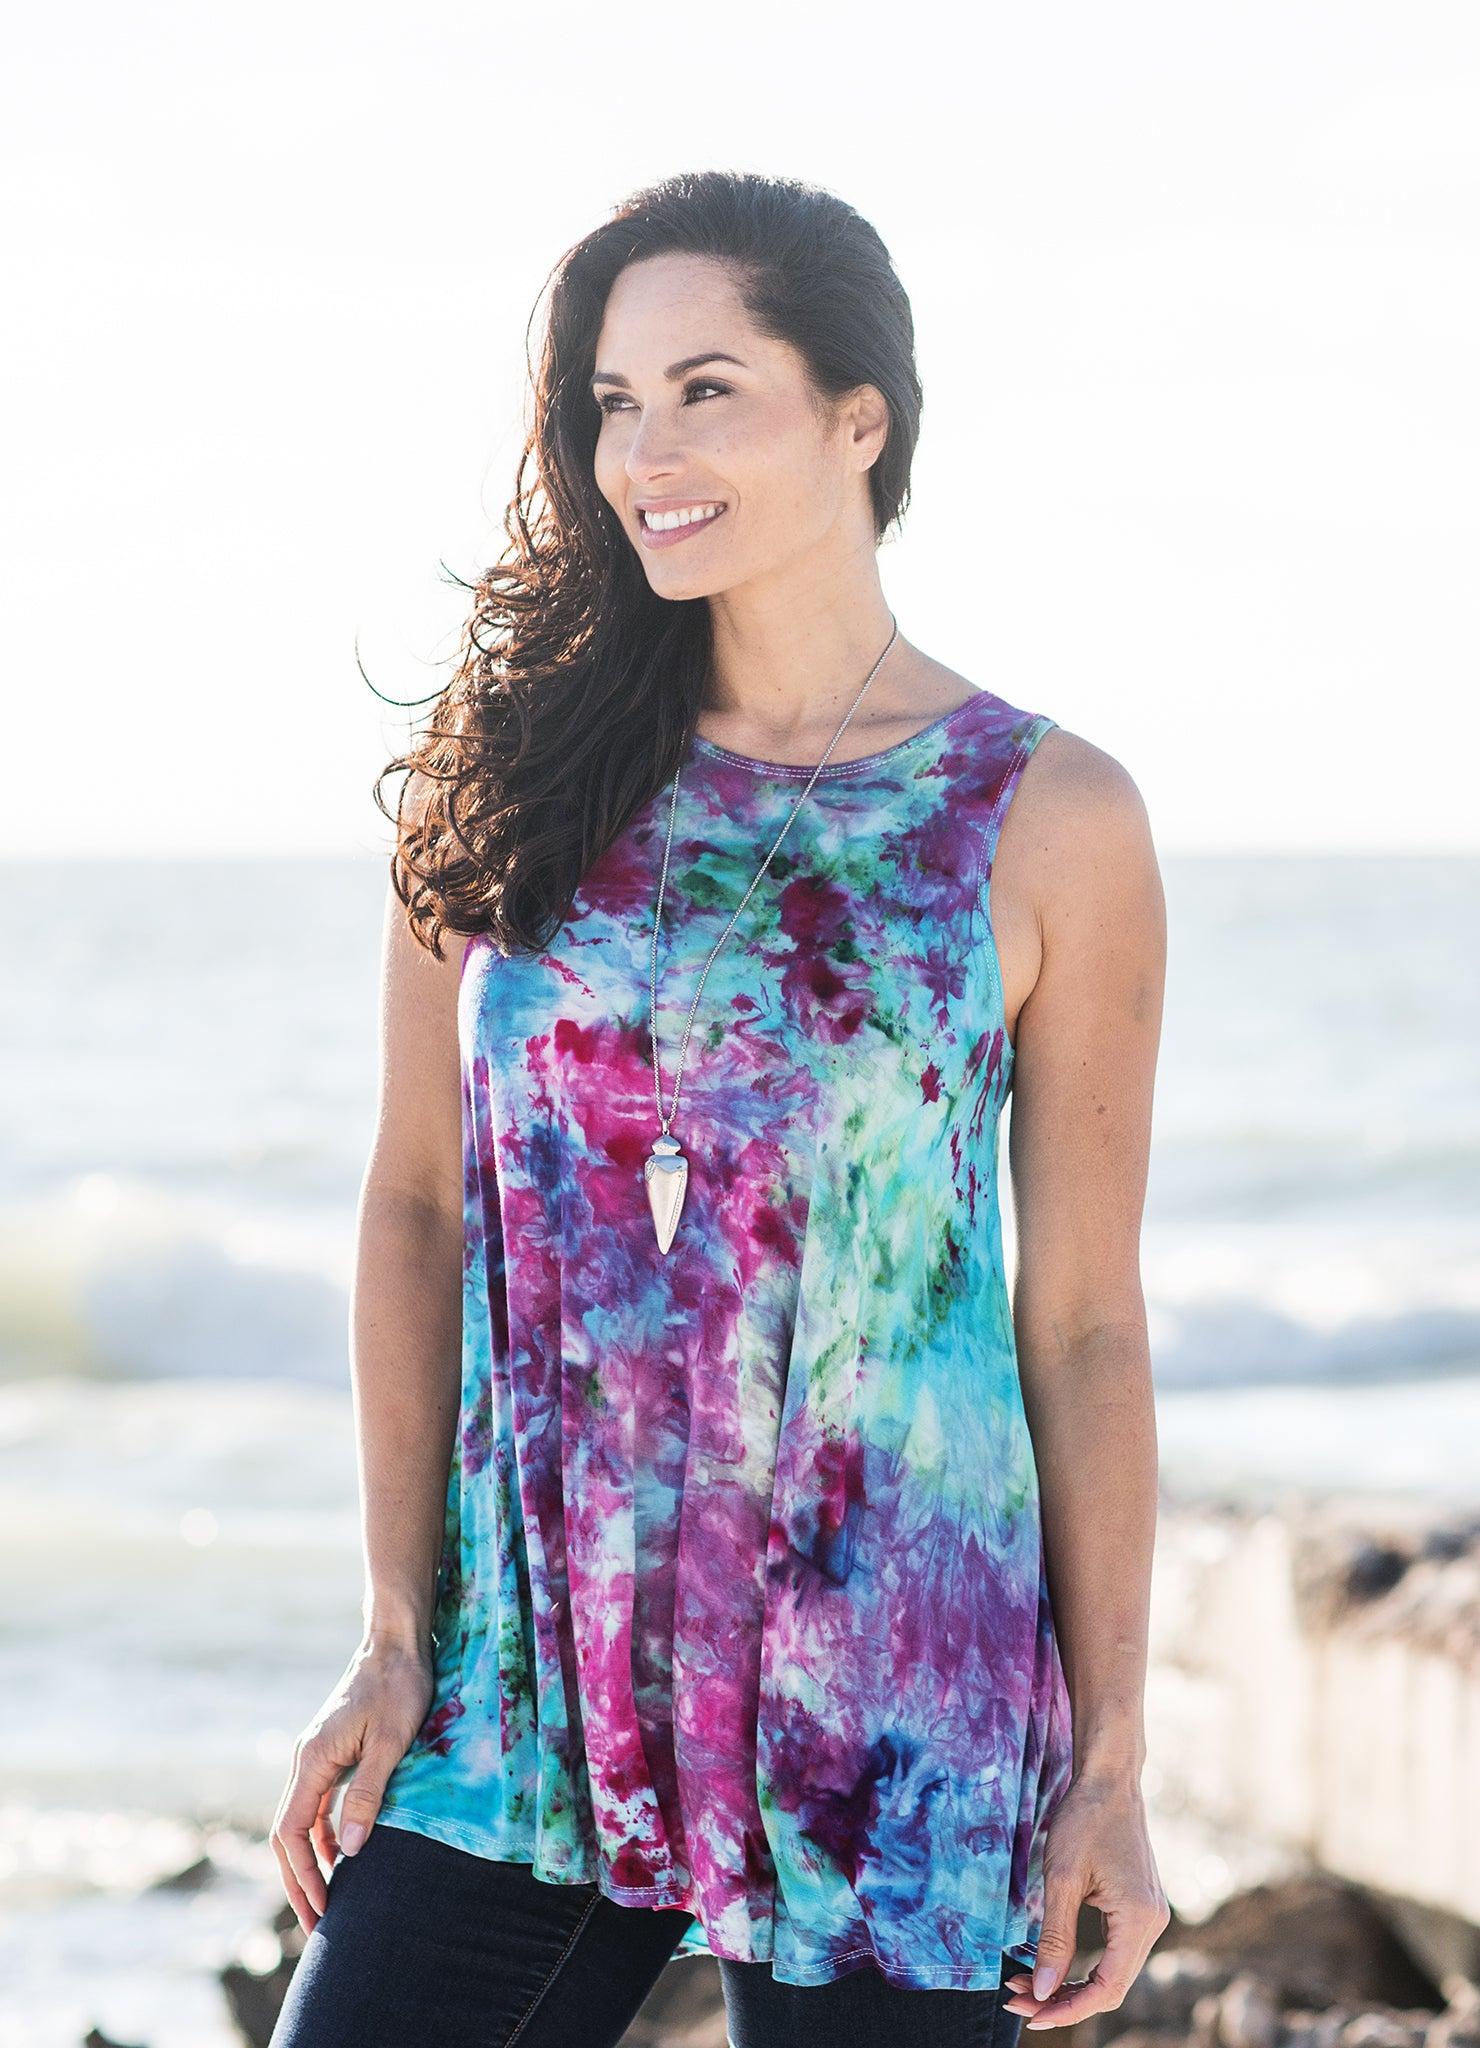 A-Line Tunic Tank in Confetti - Top - Dyetology